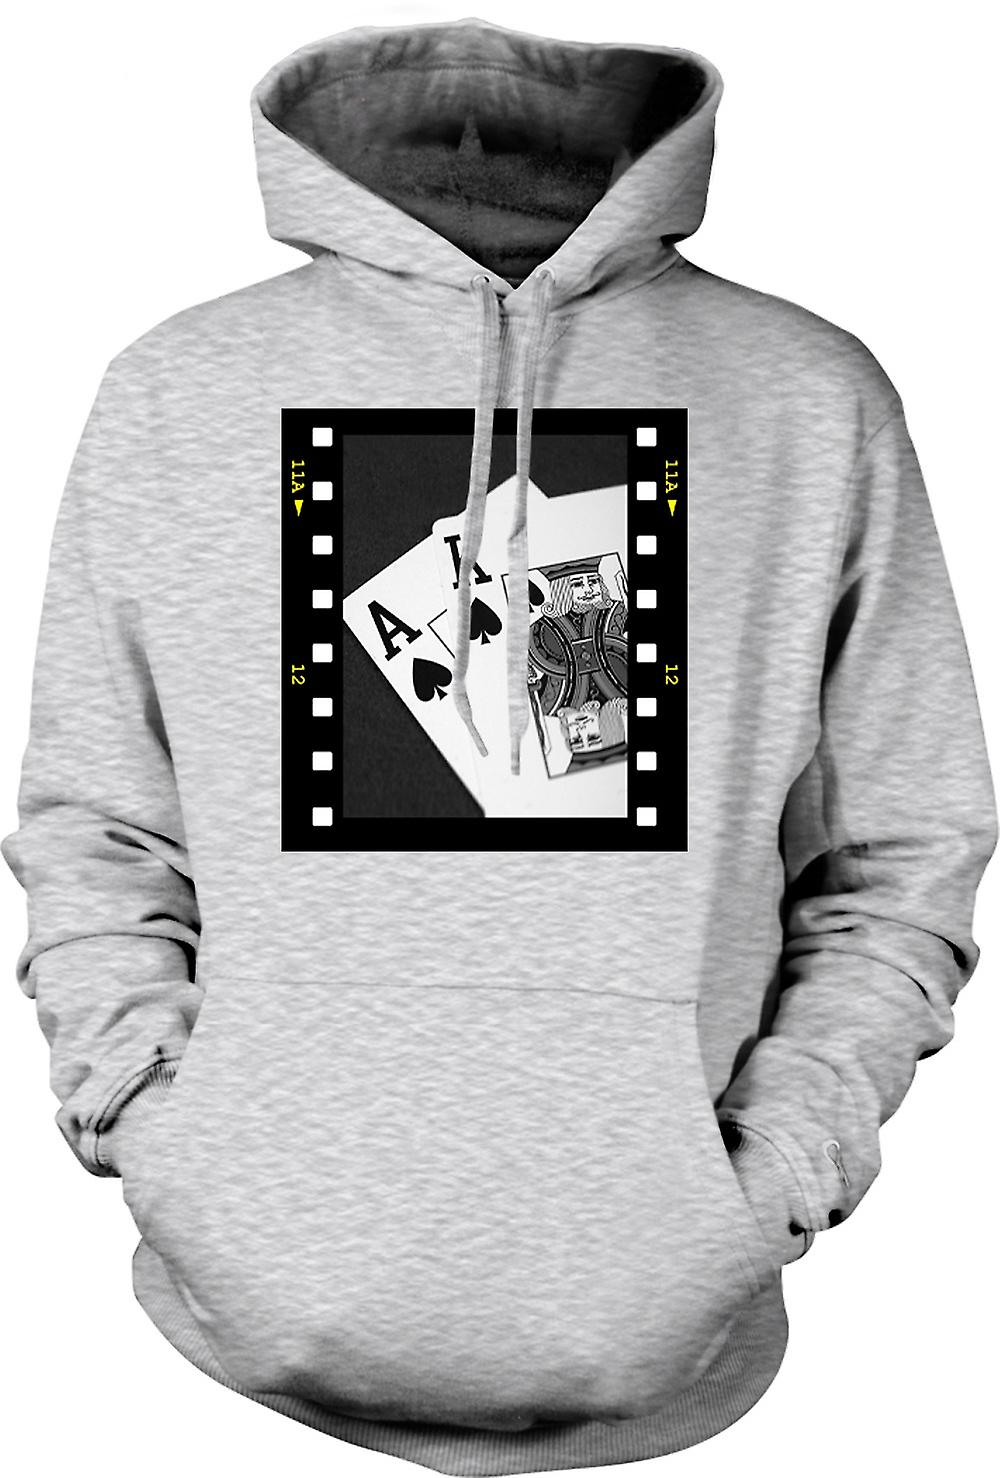 Mens Hoodie - Poker-Hand-Black-Jack-Ass-König